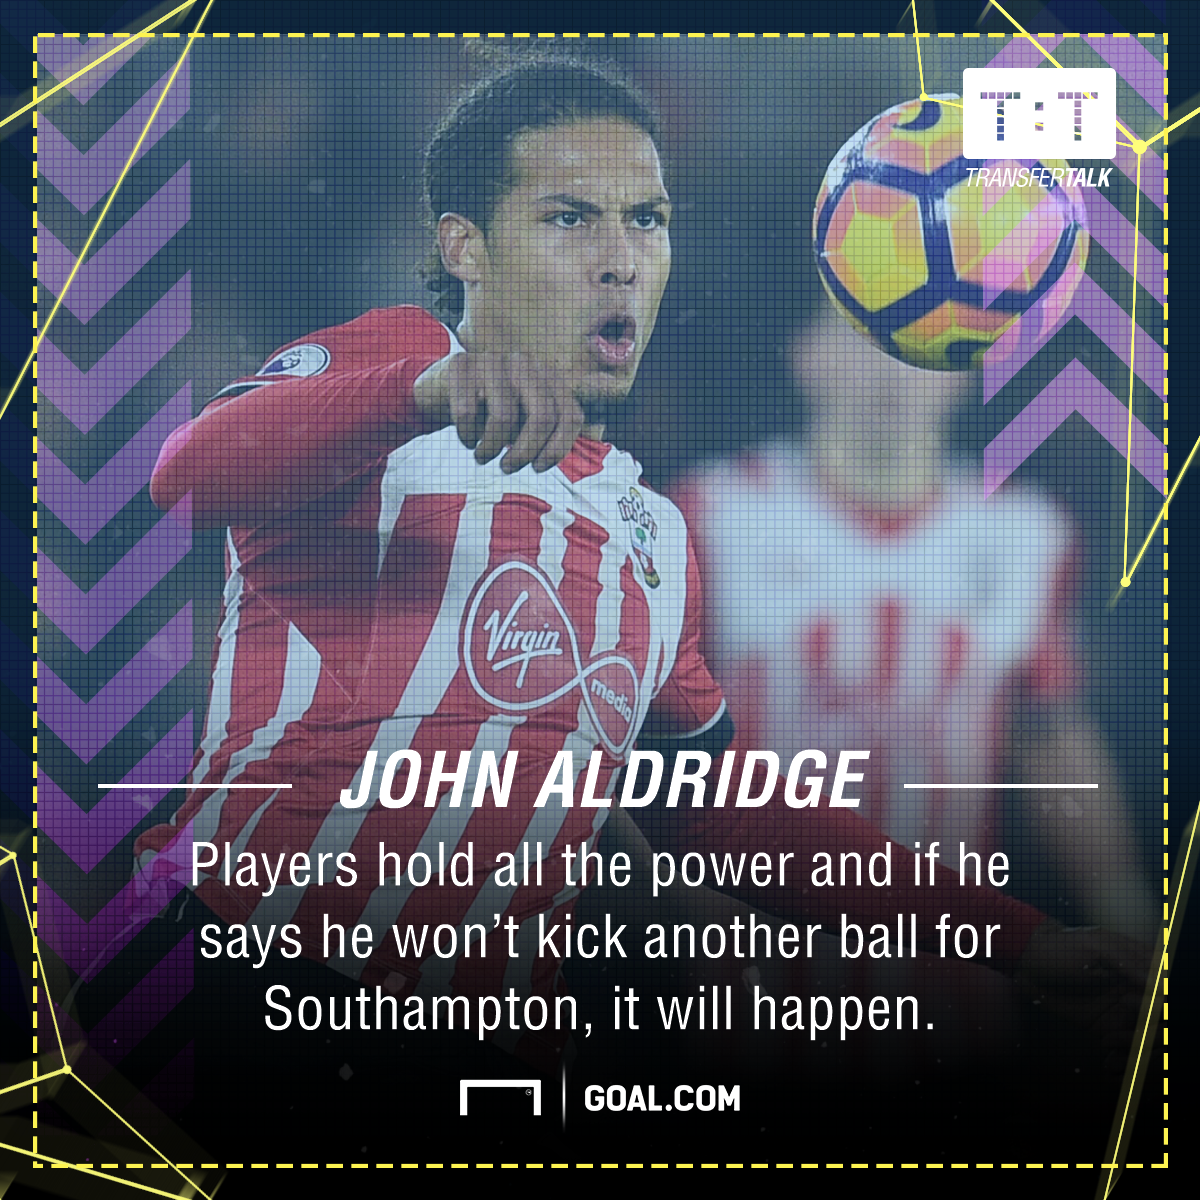 Aldo - I can't tell Virgil van Dijk to go on strike